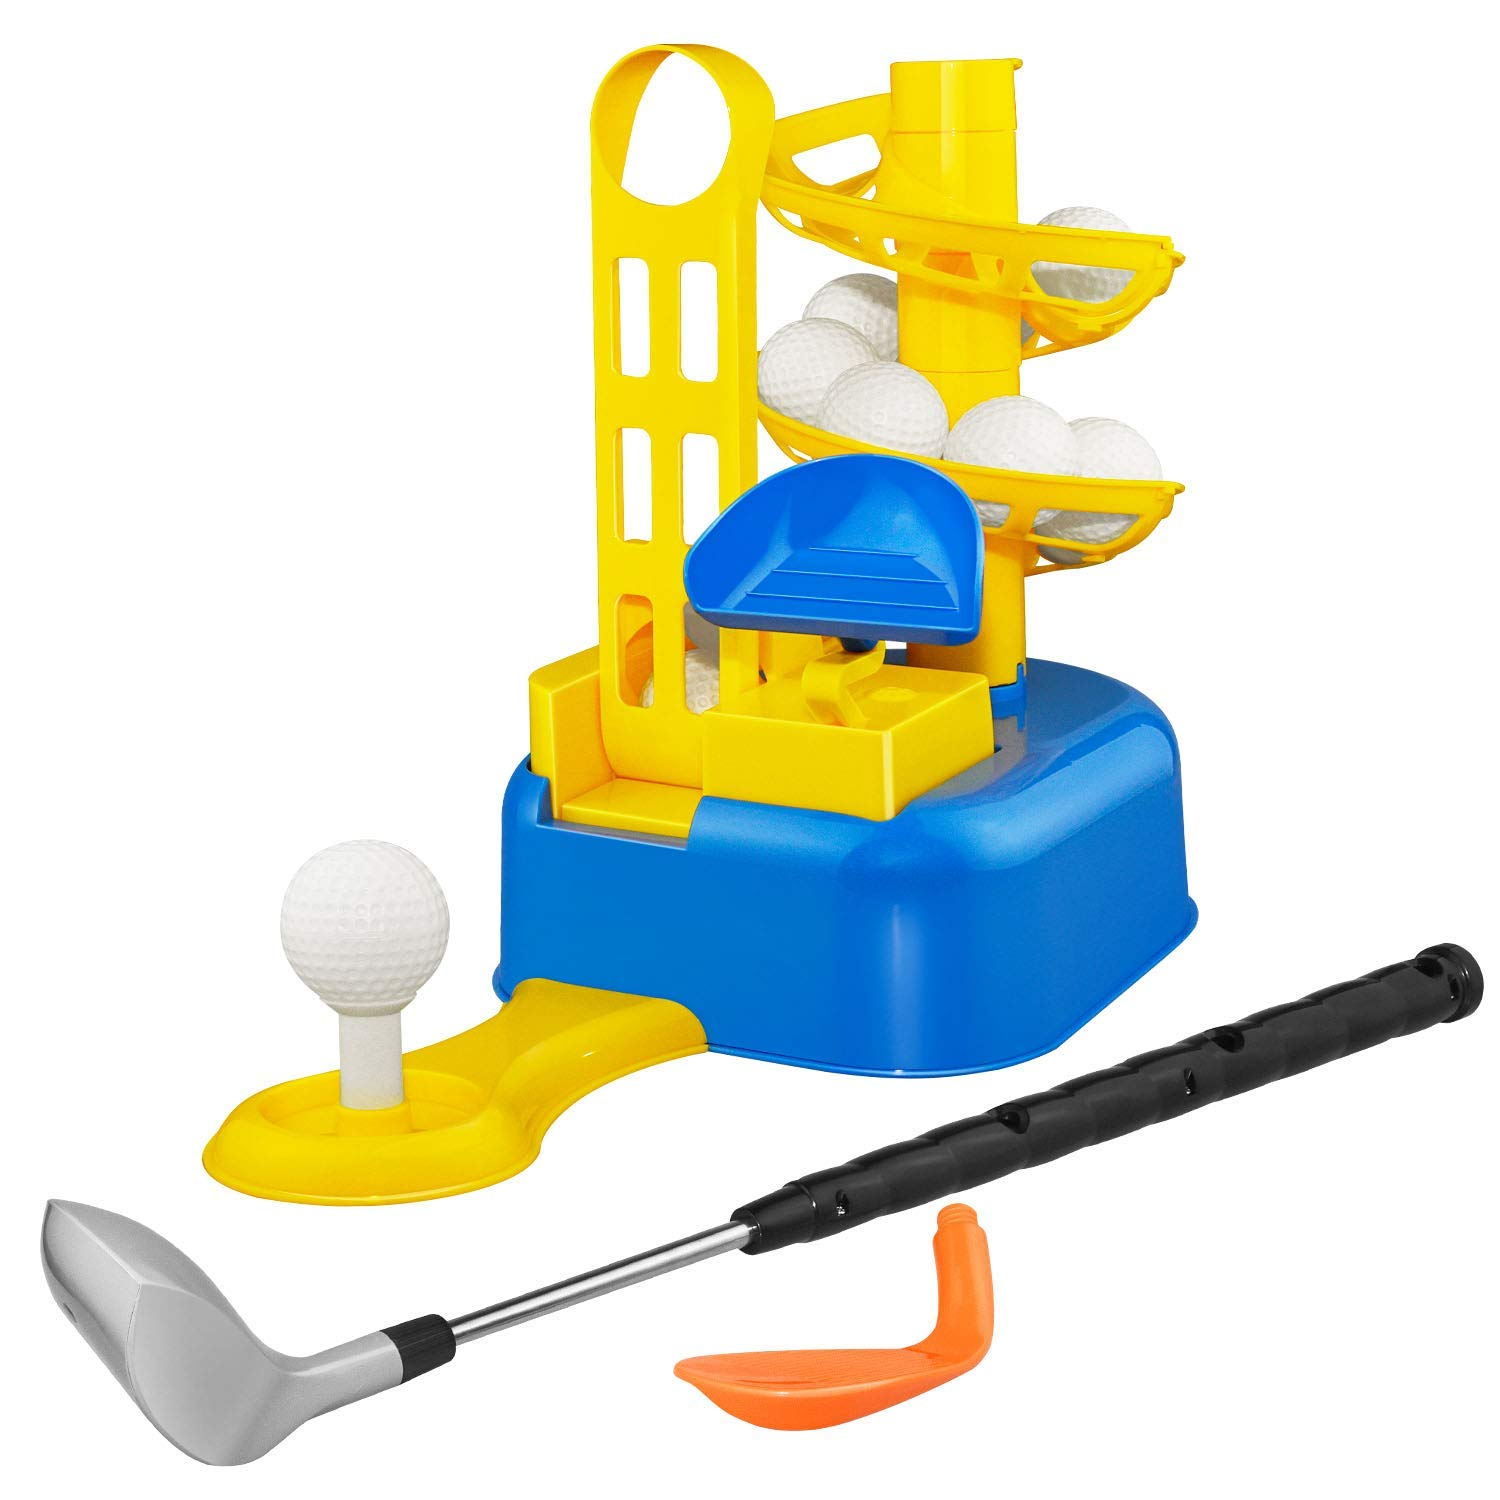 Sports Toys for 8-10 Year Old Boys Girls, SOKY Kids Golf Clubs Sports Outdoor Games for Kids Age 3-12 Indoor Outside Toys for 8-9 Boys Girls Teen Christmas Toys Gifts Stocking Stuffers for Boys Kids by SOKY